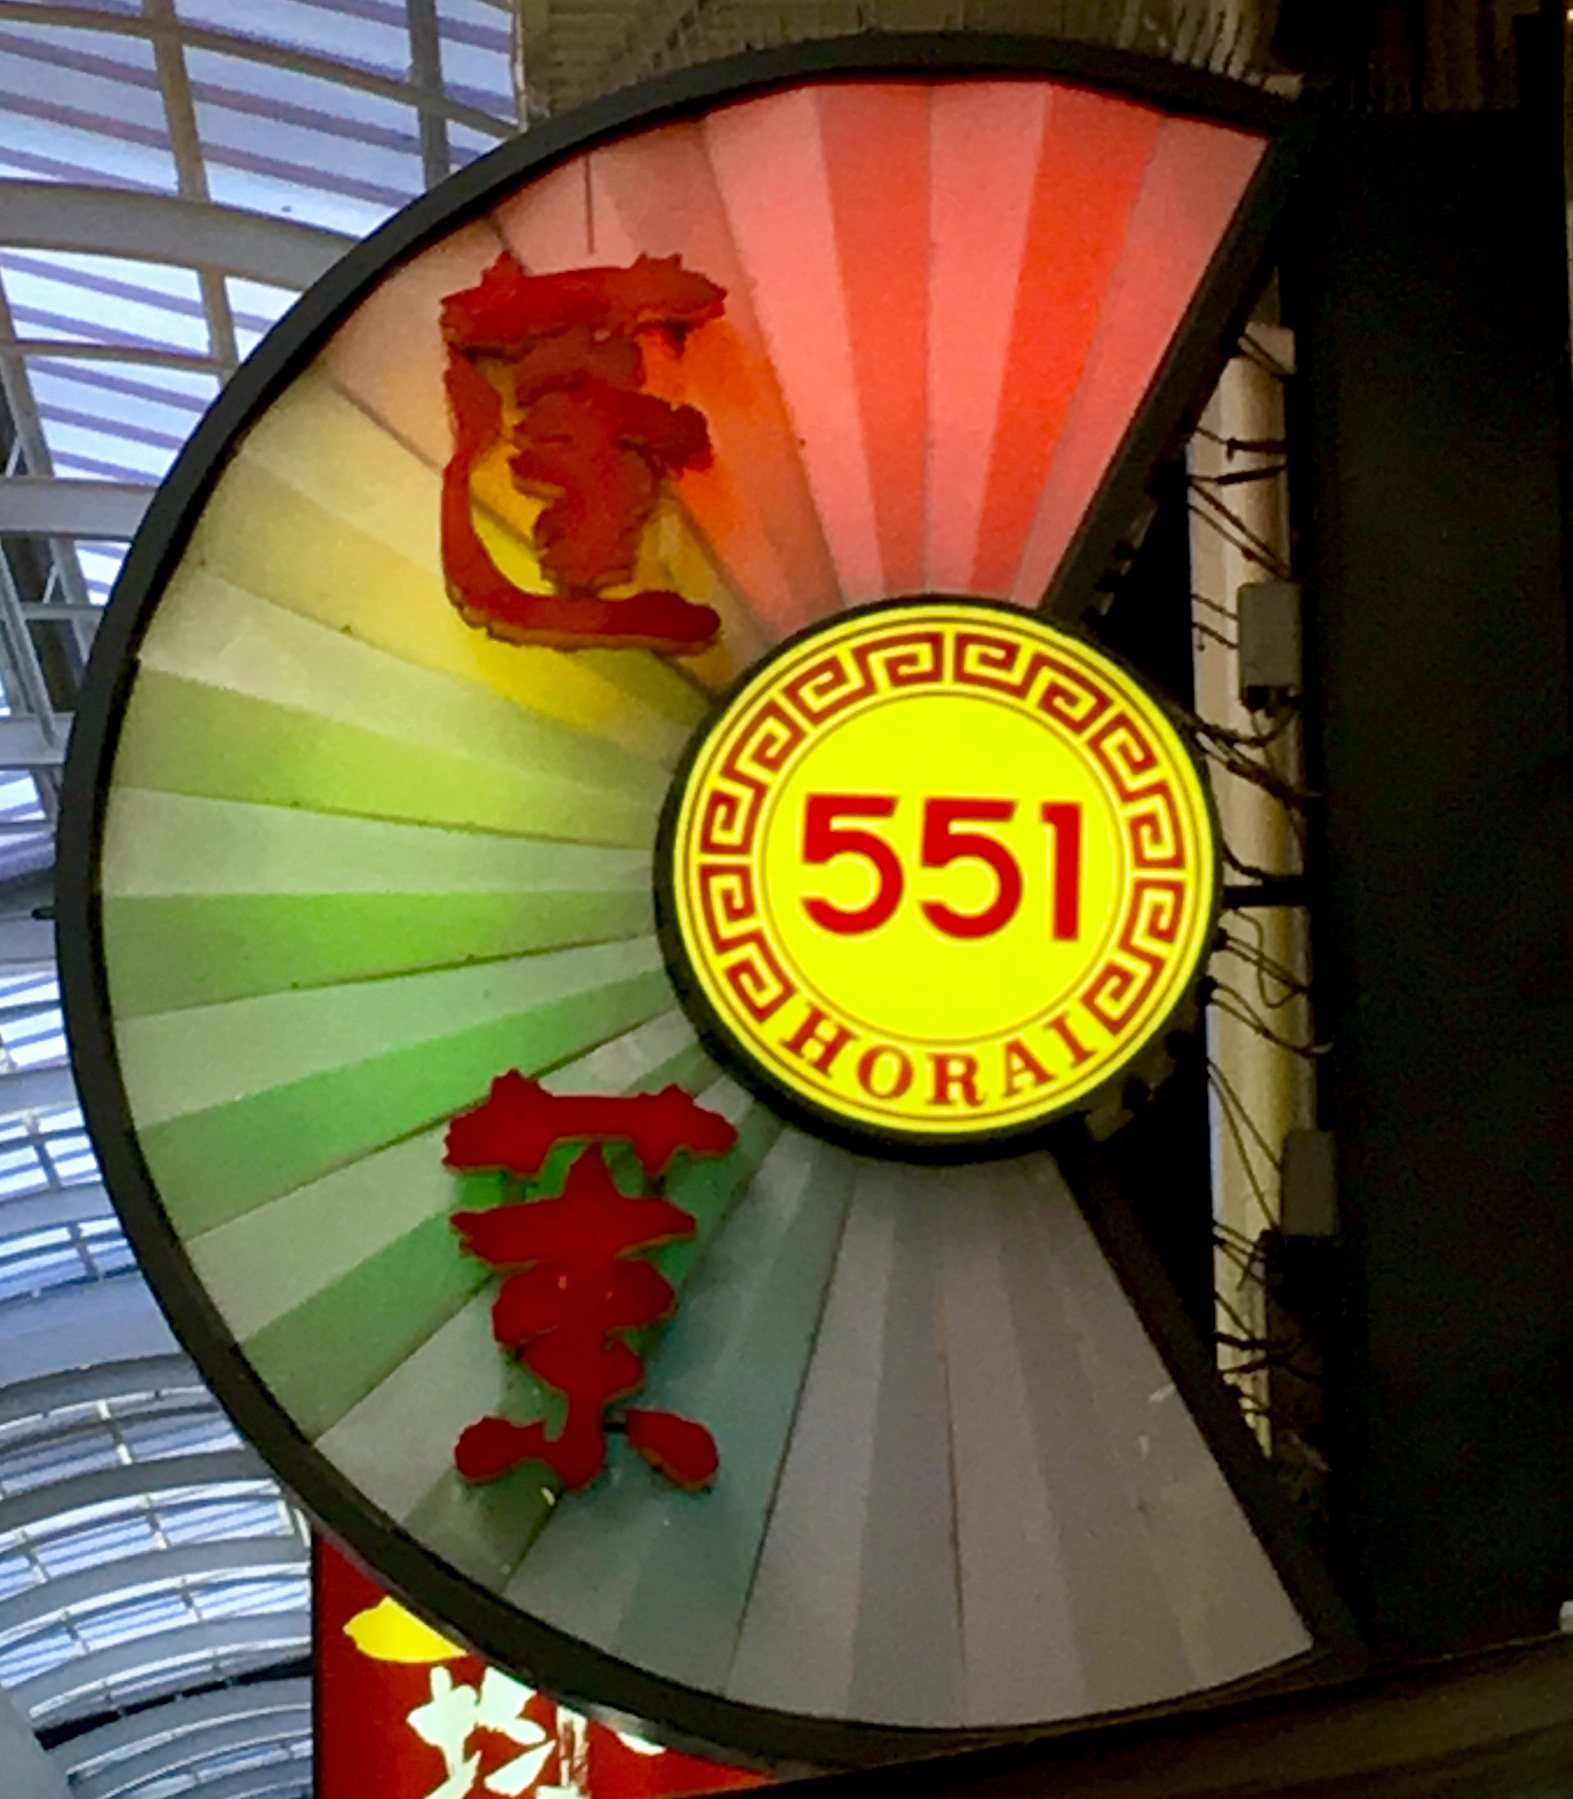 Half circle shaped rainbow colored neon sign for a restaurant and the numbers 551